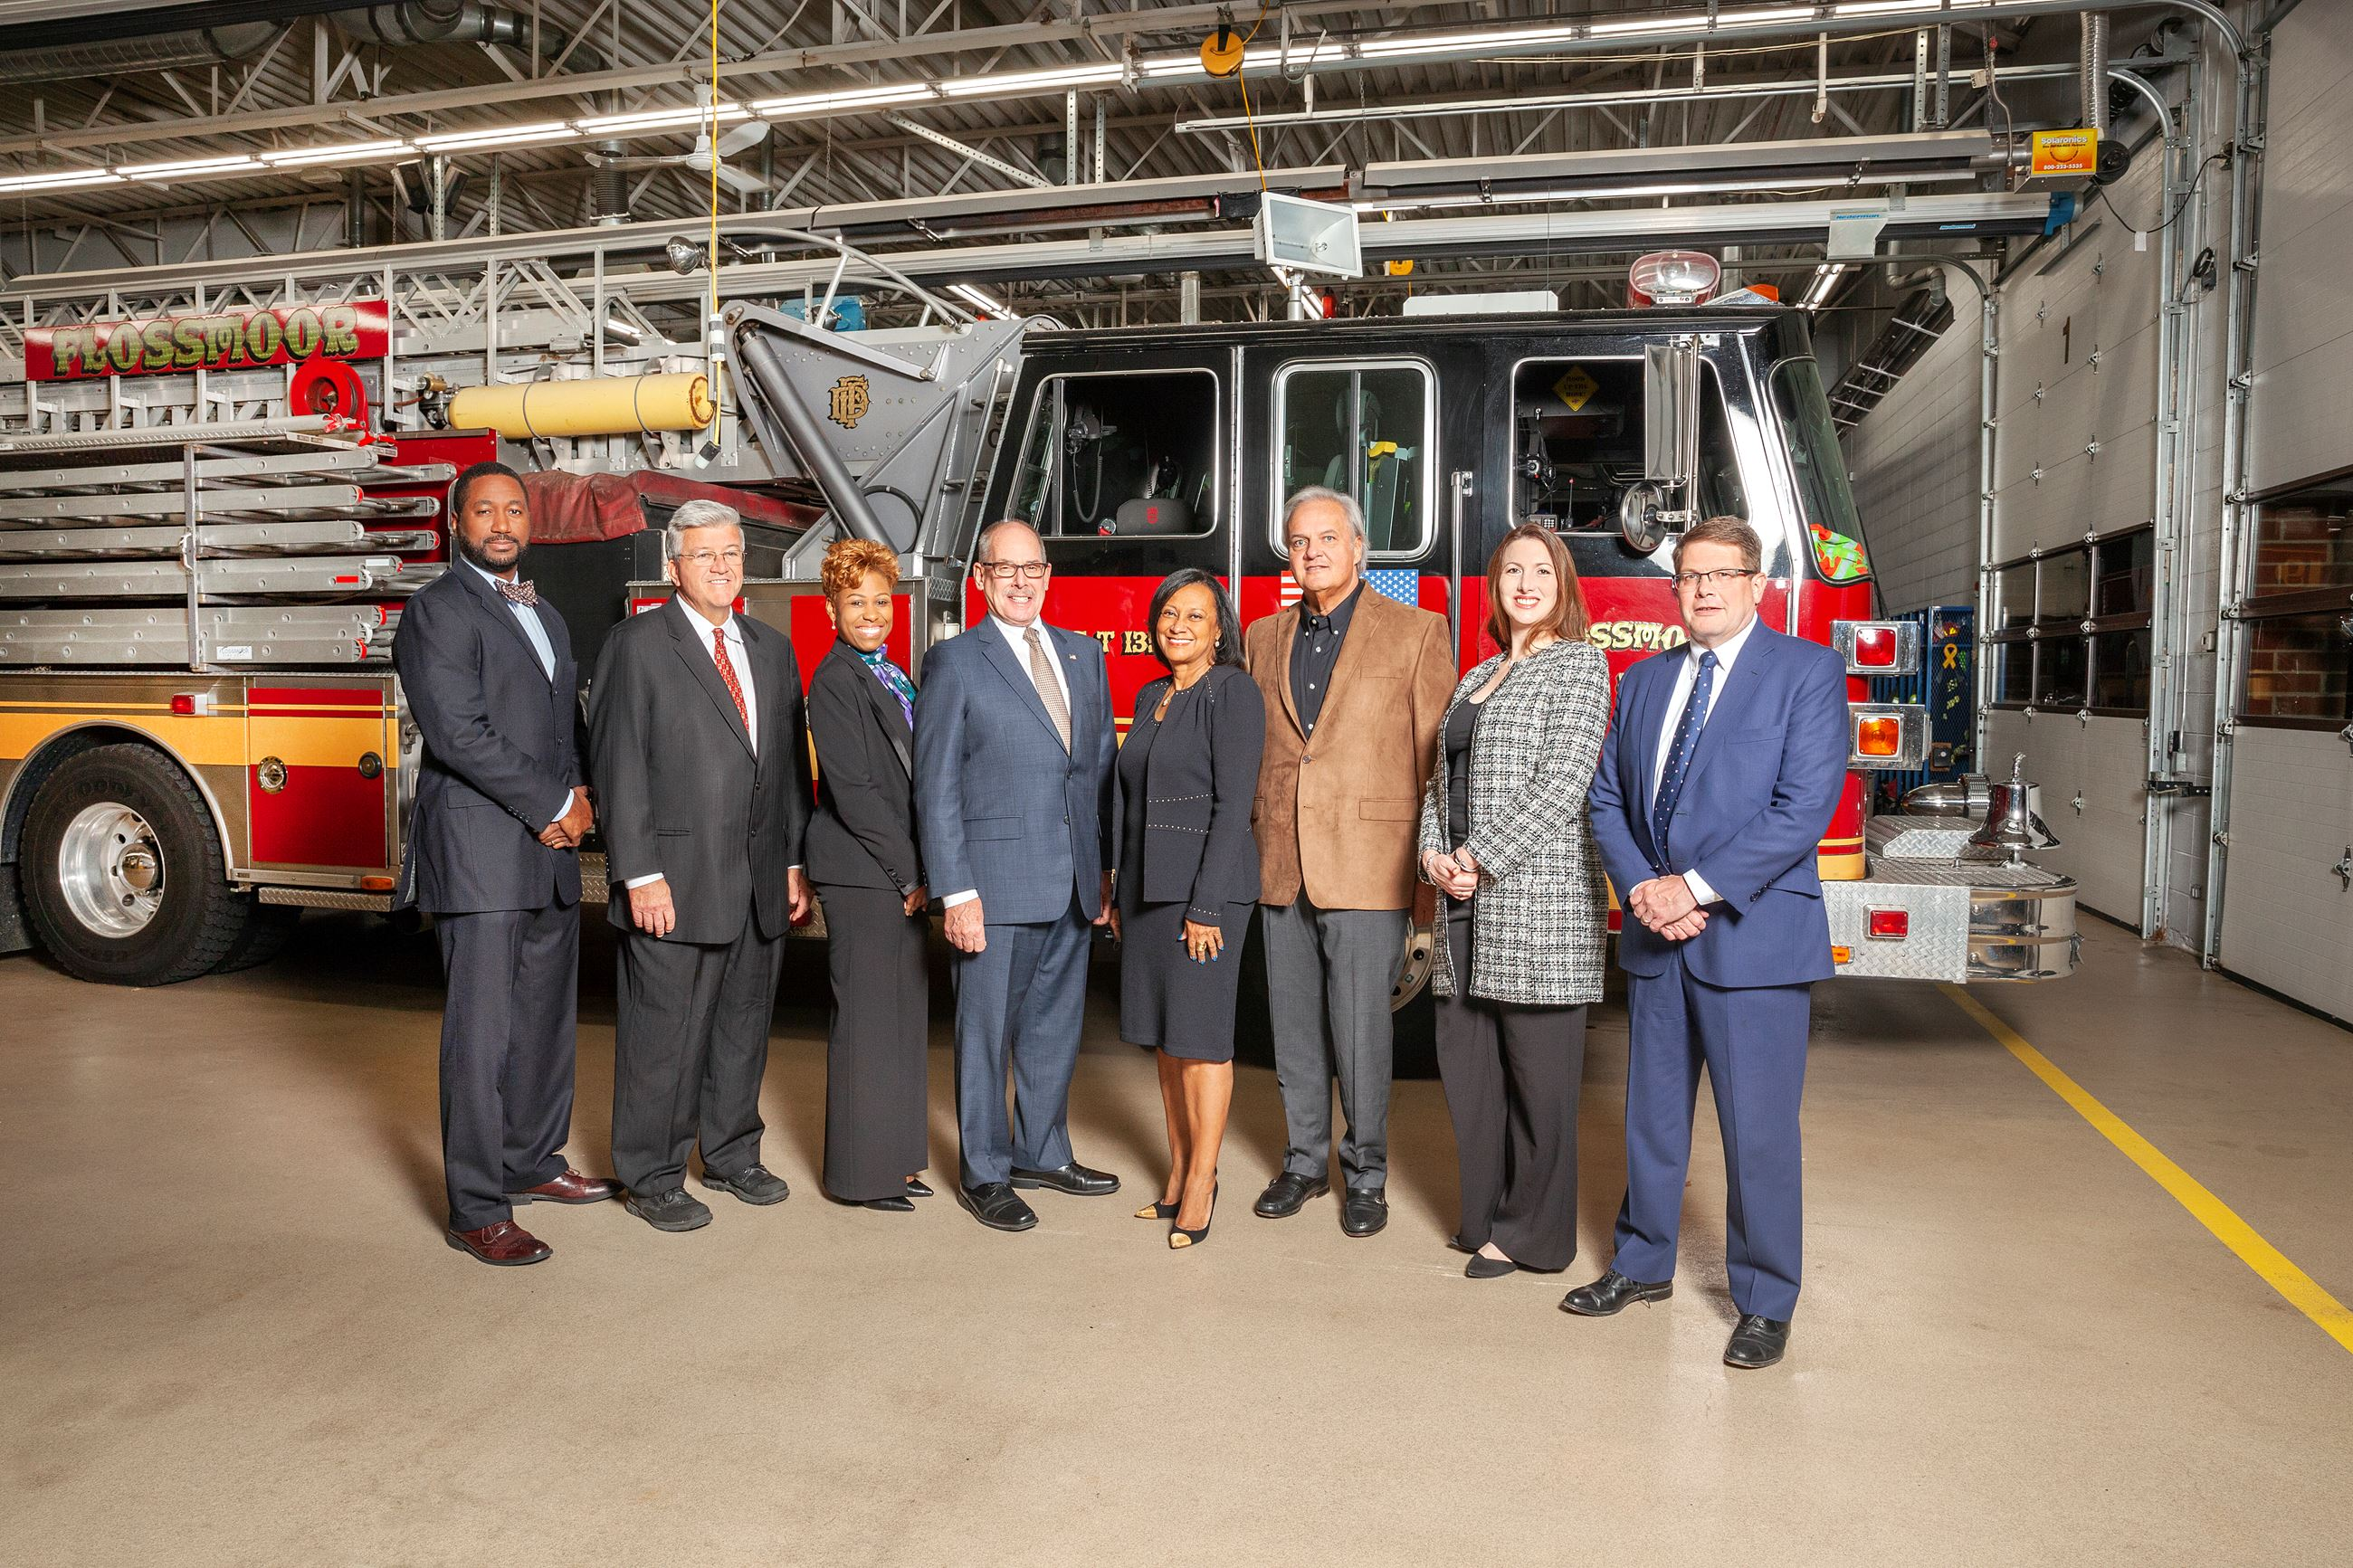 Photo of Mayor, Board of Trustees and Clerk in Front of Fire Truck